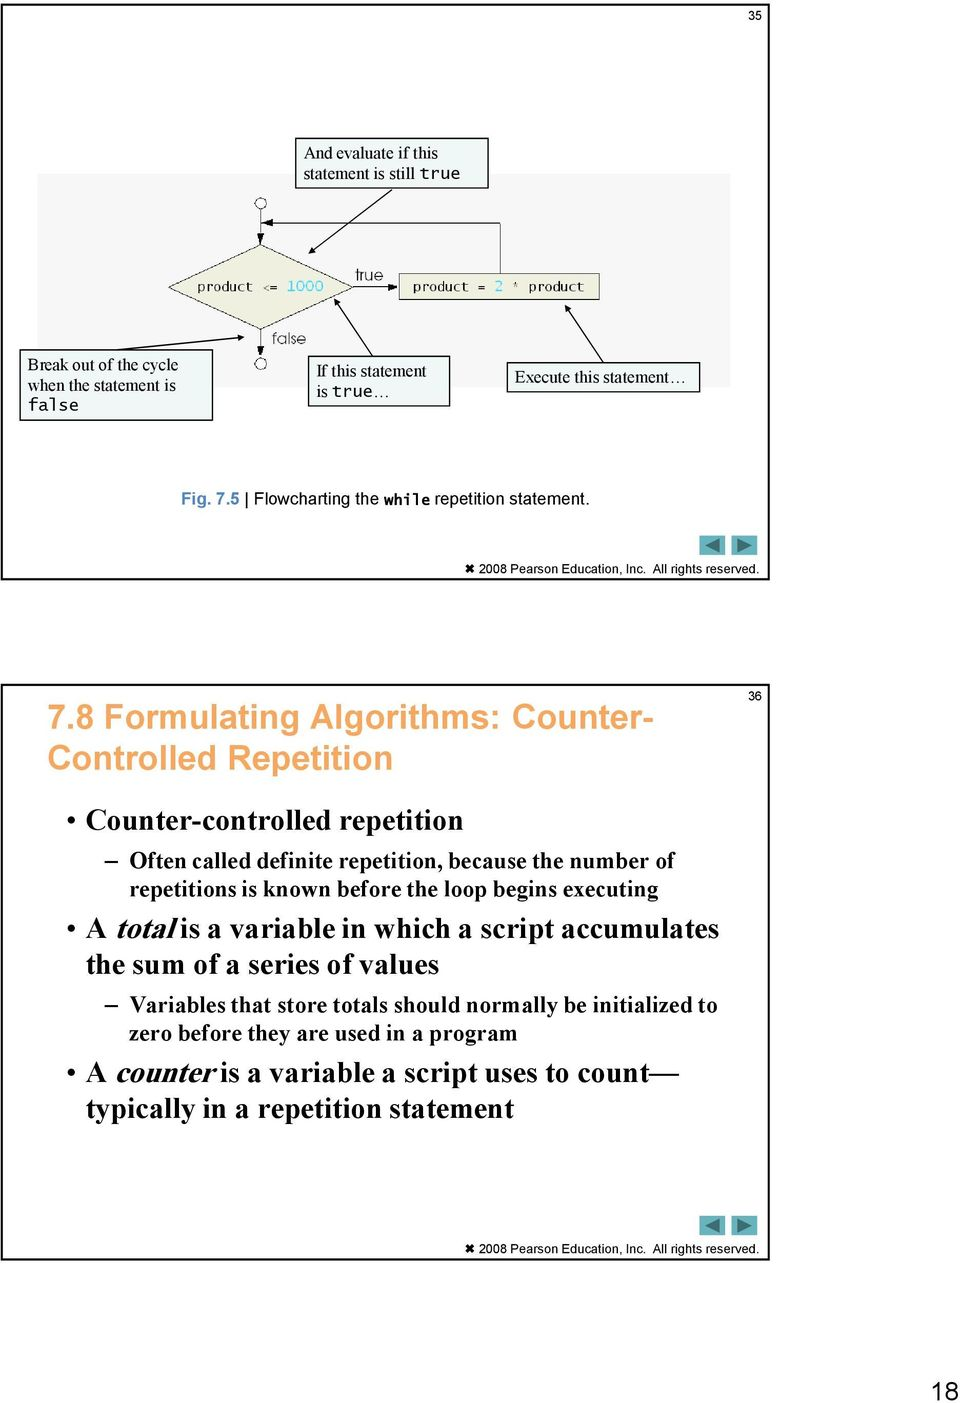 8 Formulating Algorithms: Counter- Controlled Repetition 36 Counter-controlled repetition Often called definite repetition, because the number of repetitions is known